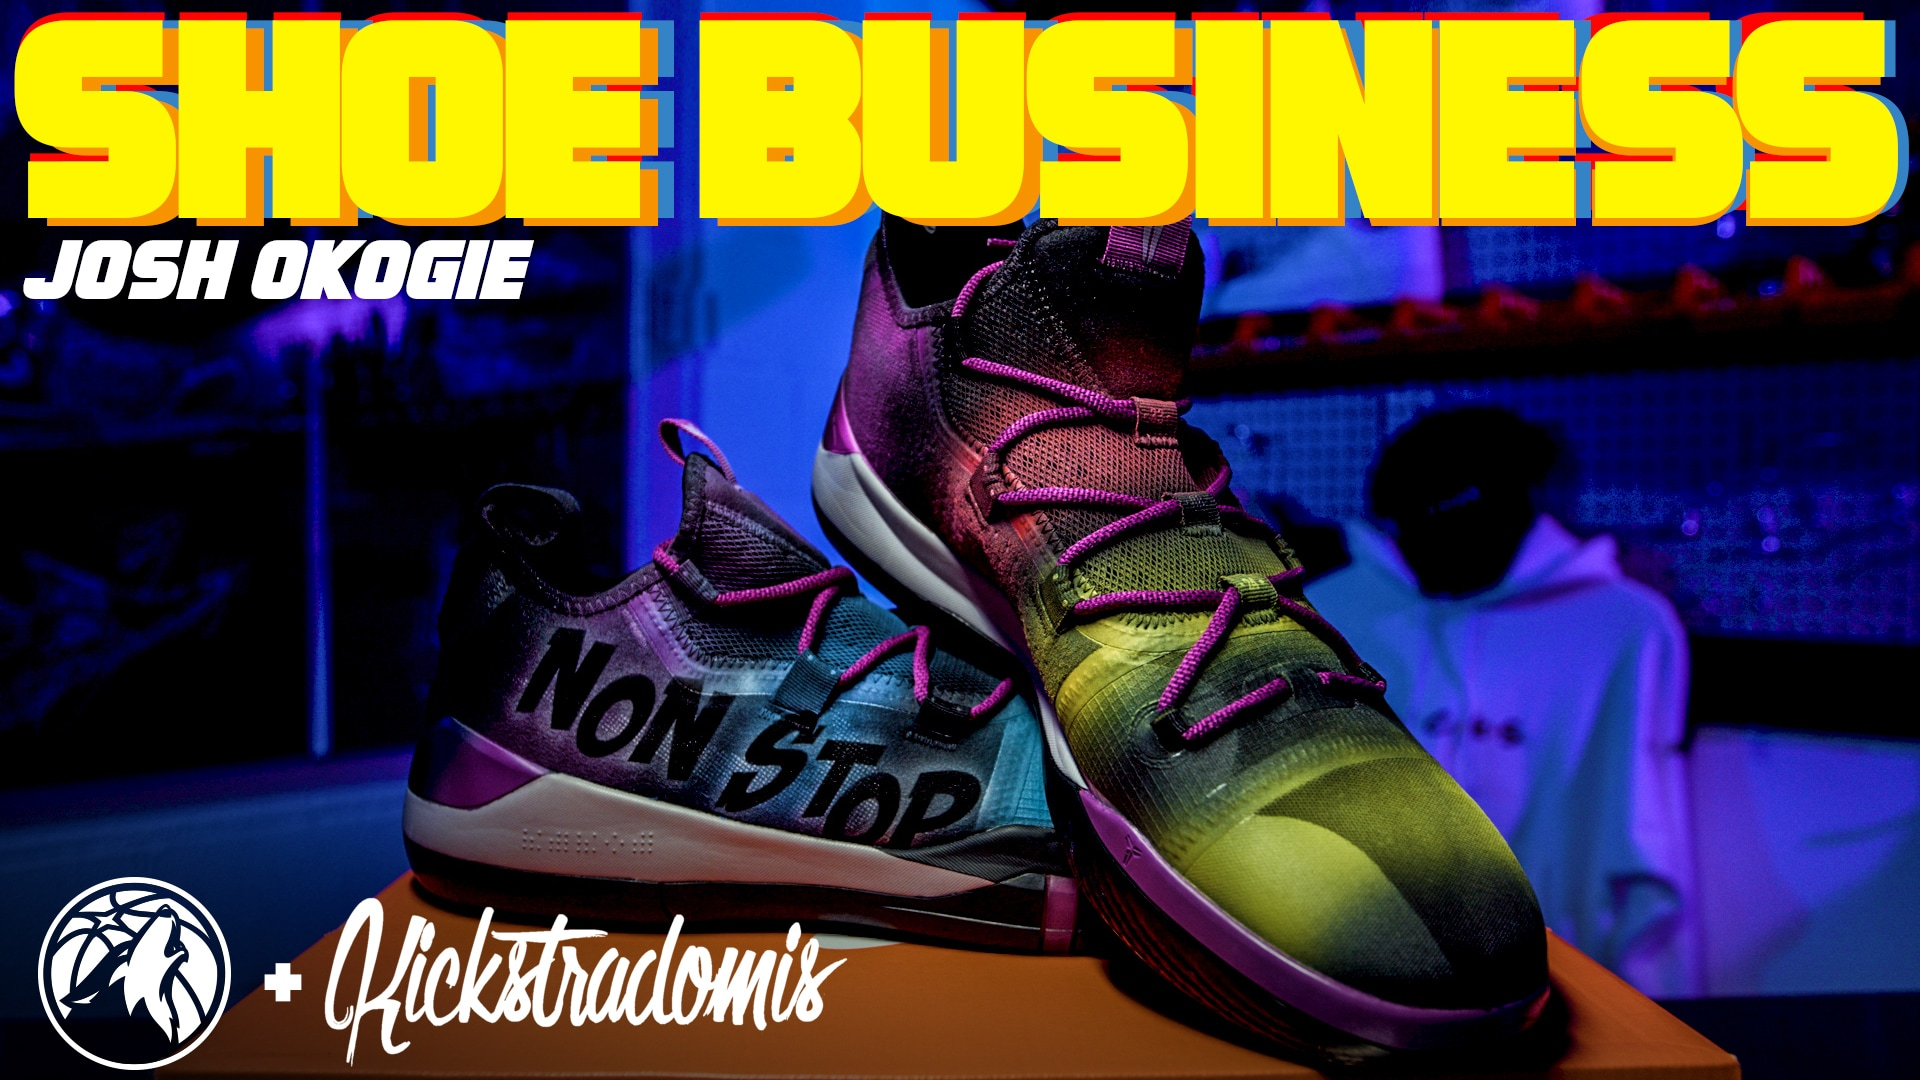 Shoe Business With Kickstradomis | Josh Okogie